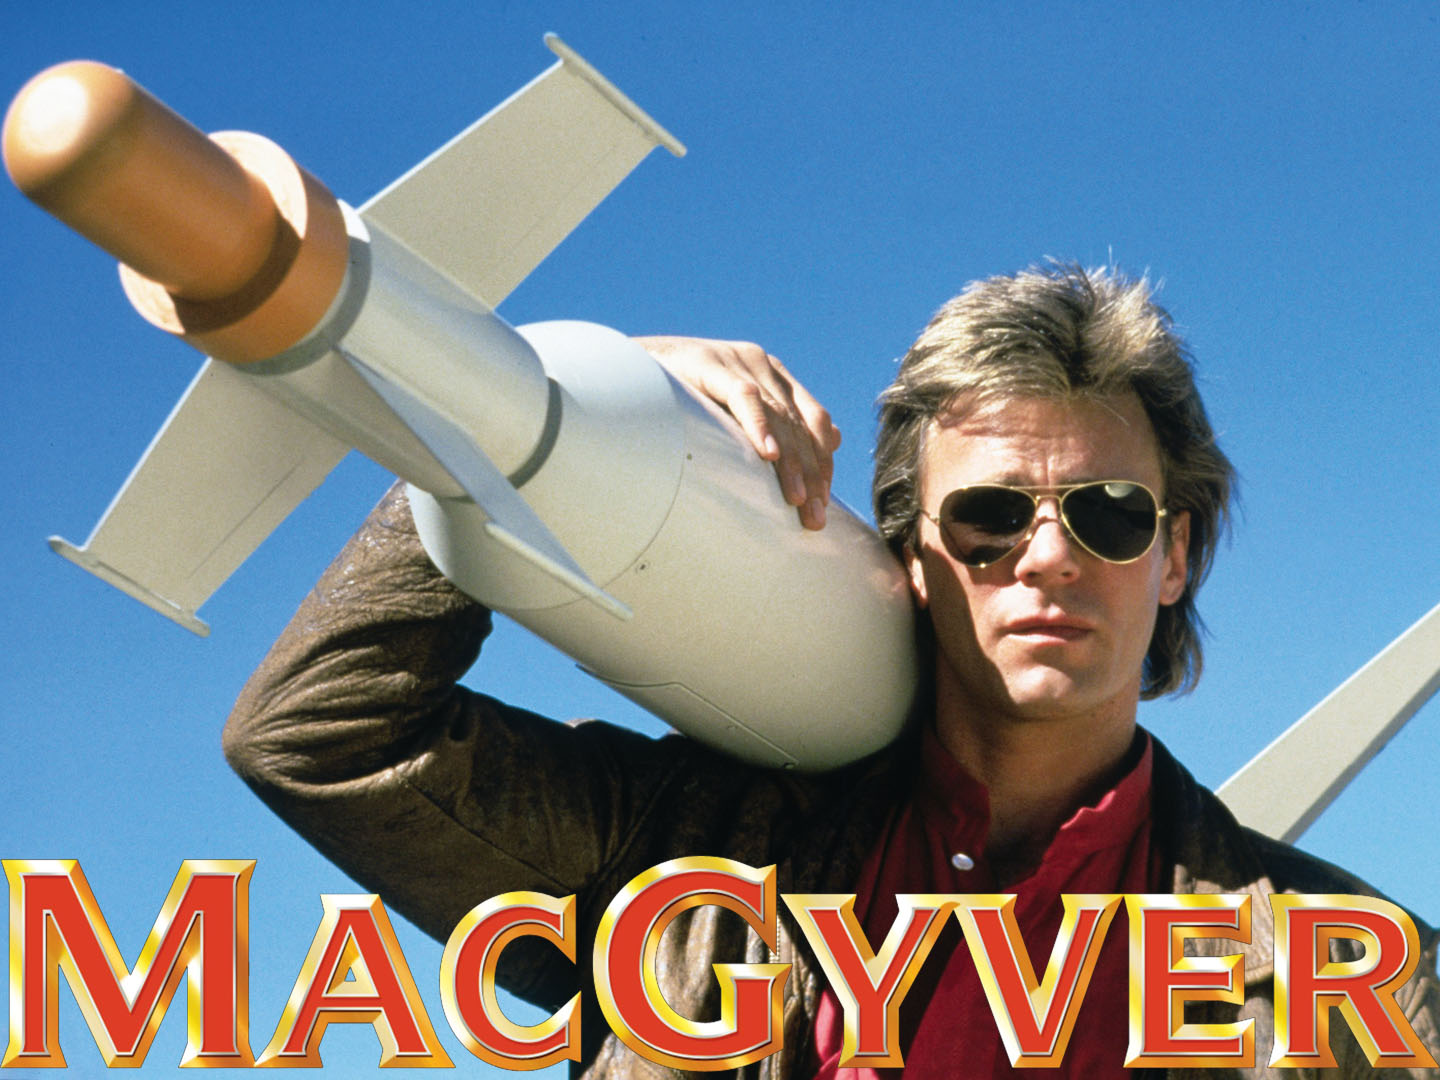 MacGyver is returning to TV with a reboot from Furious 7 director James Wan